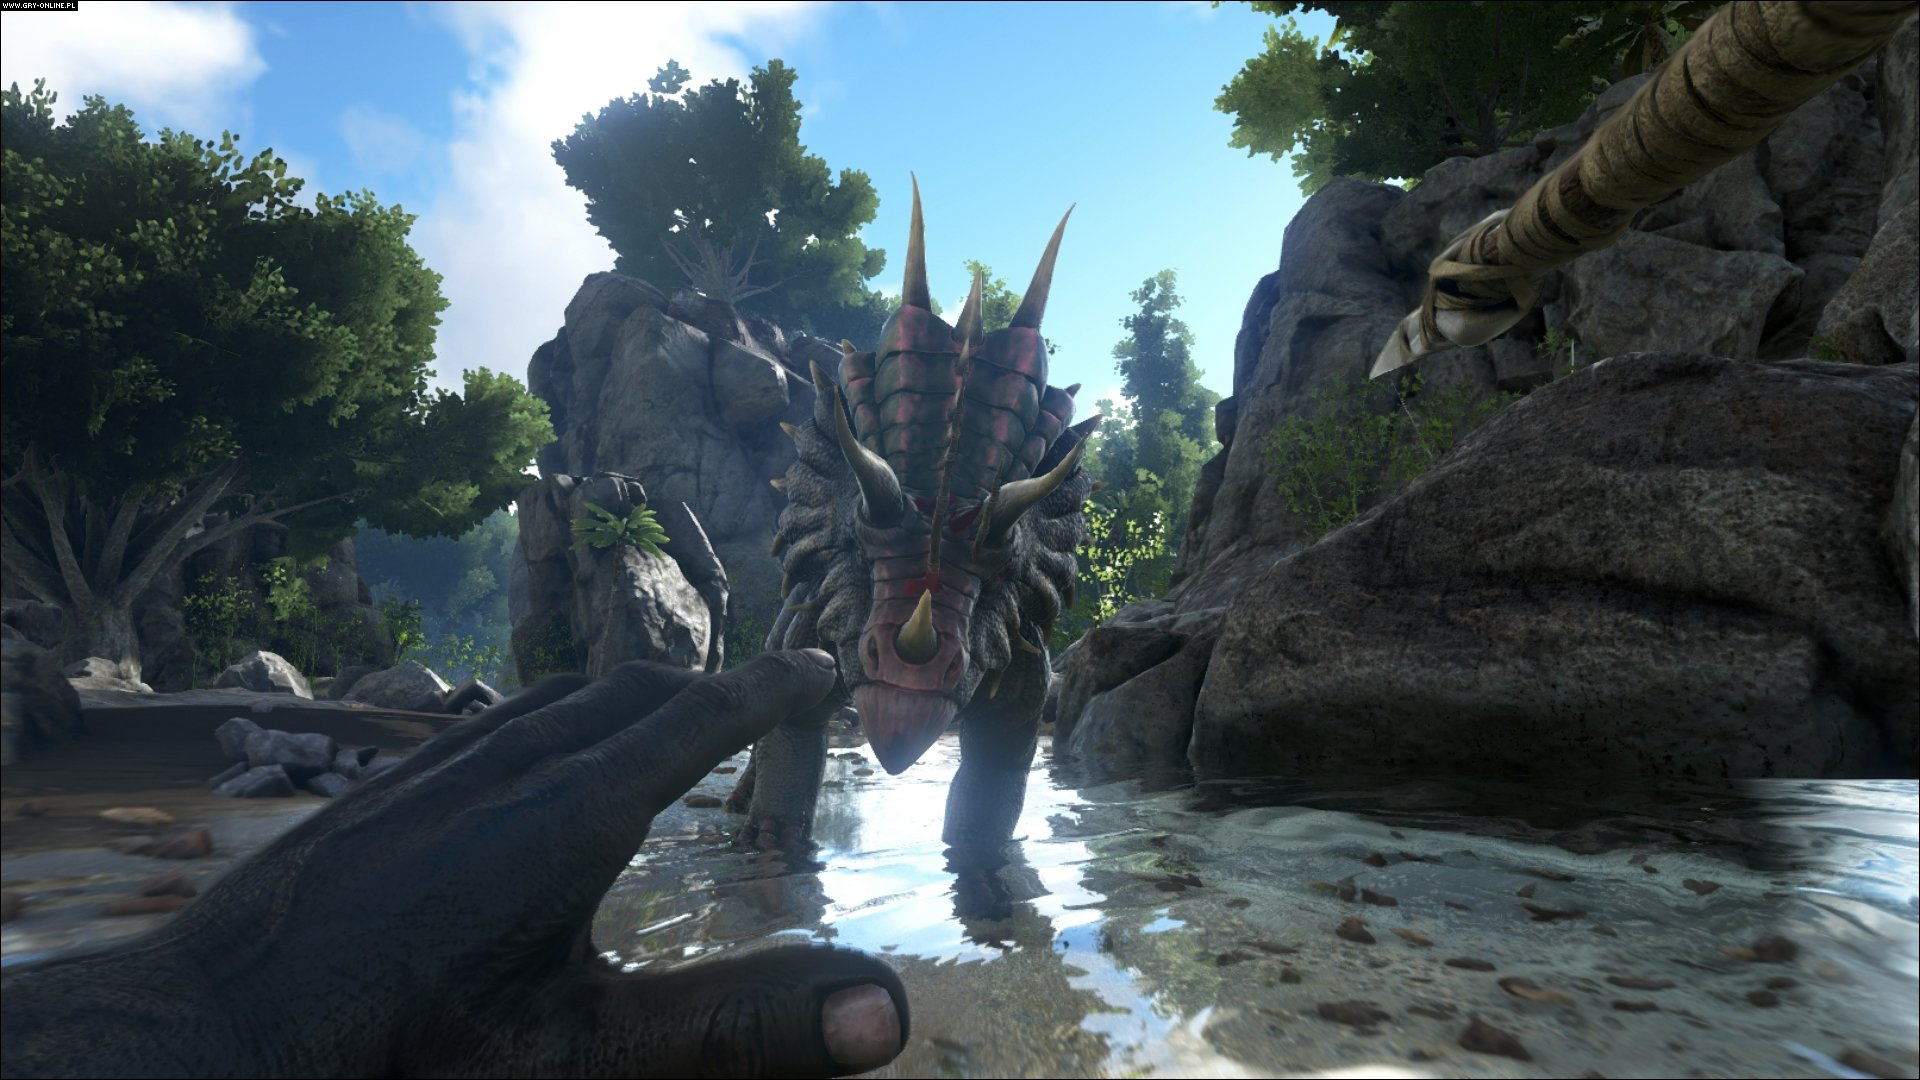 ARK: Survival Evolved PC, PS4, XONE Games Image 120/120, Studio Wildcard